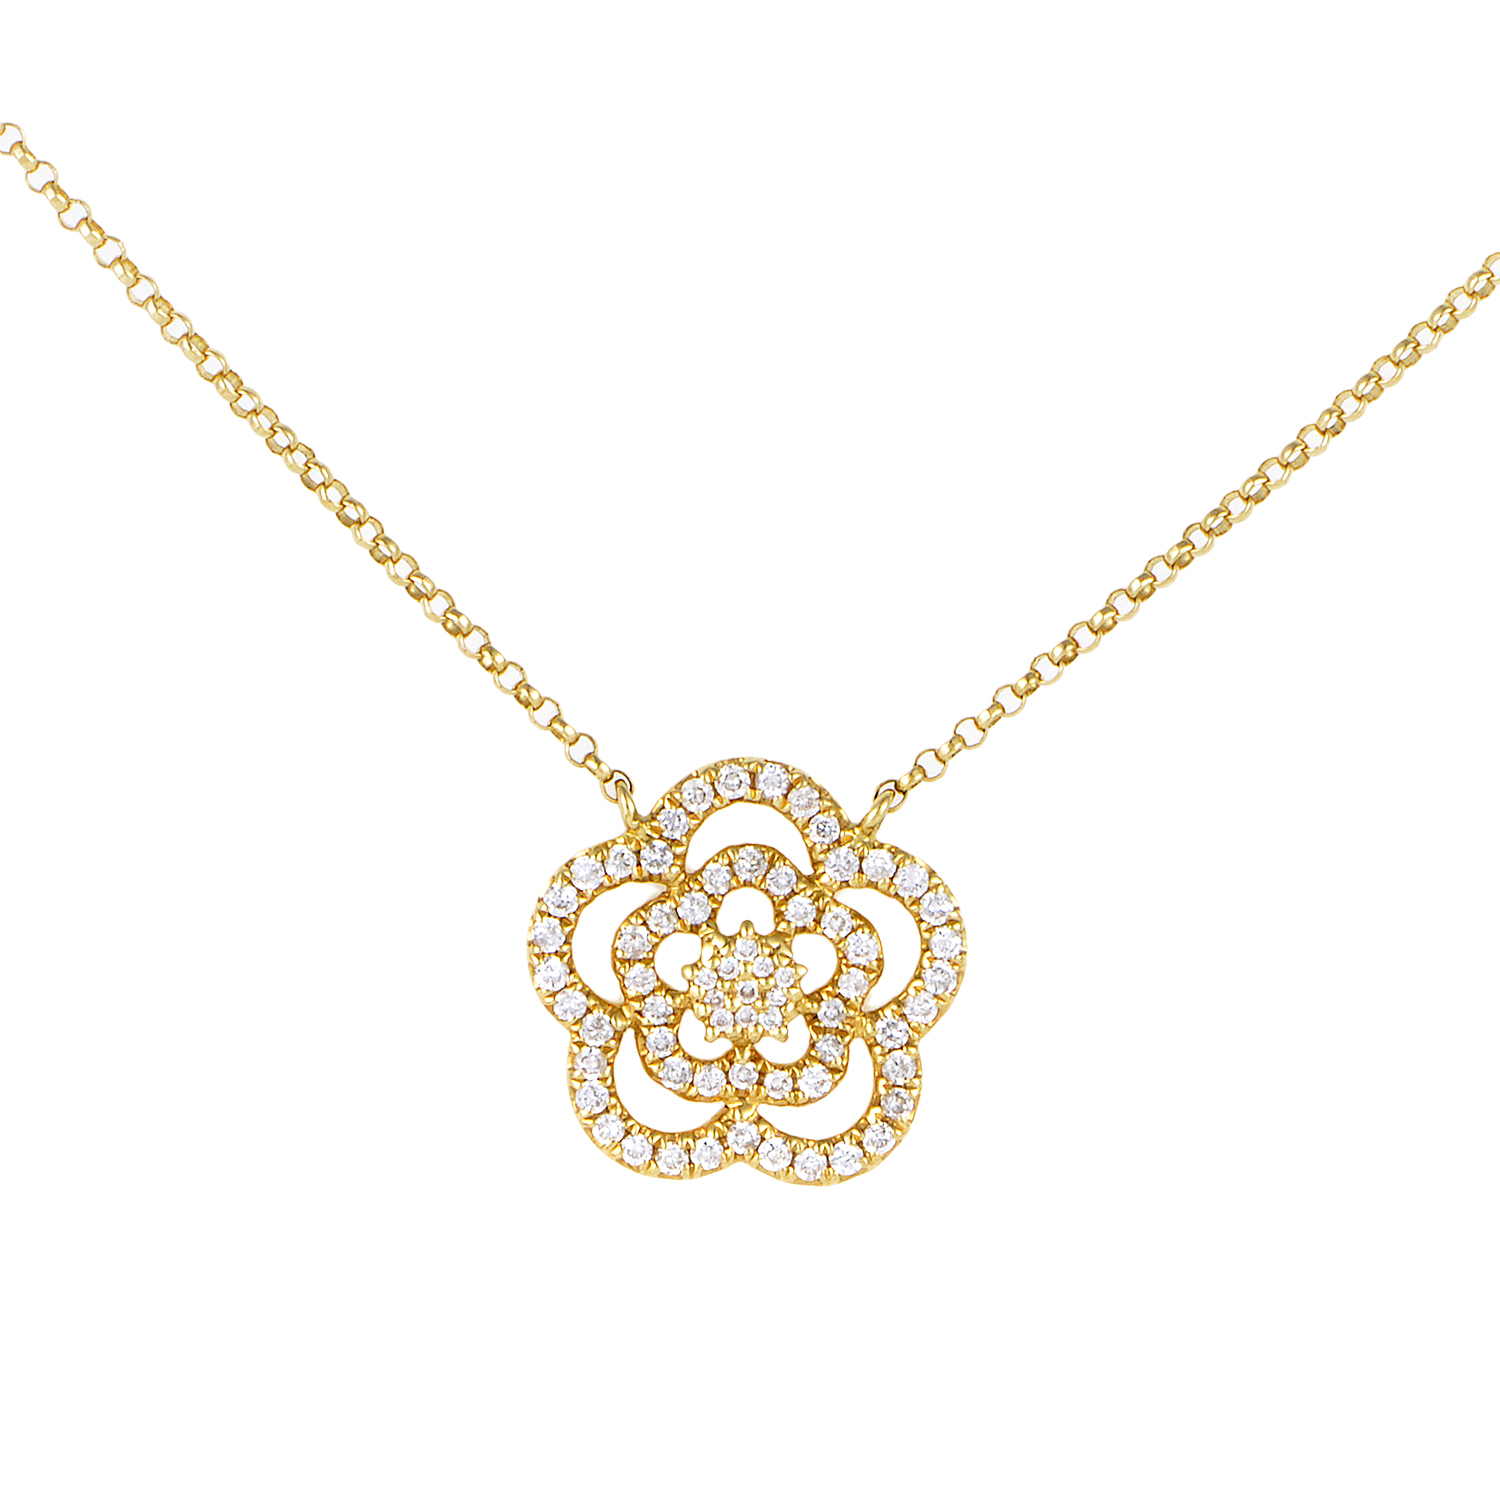 Women's 18K Yellow Gold Diamond Pave Flower Pendant Necklace KE29851RZZ